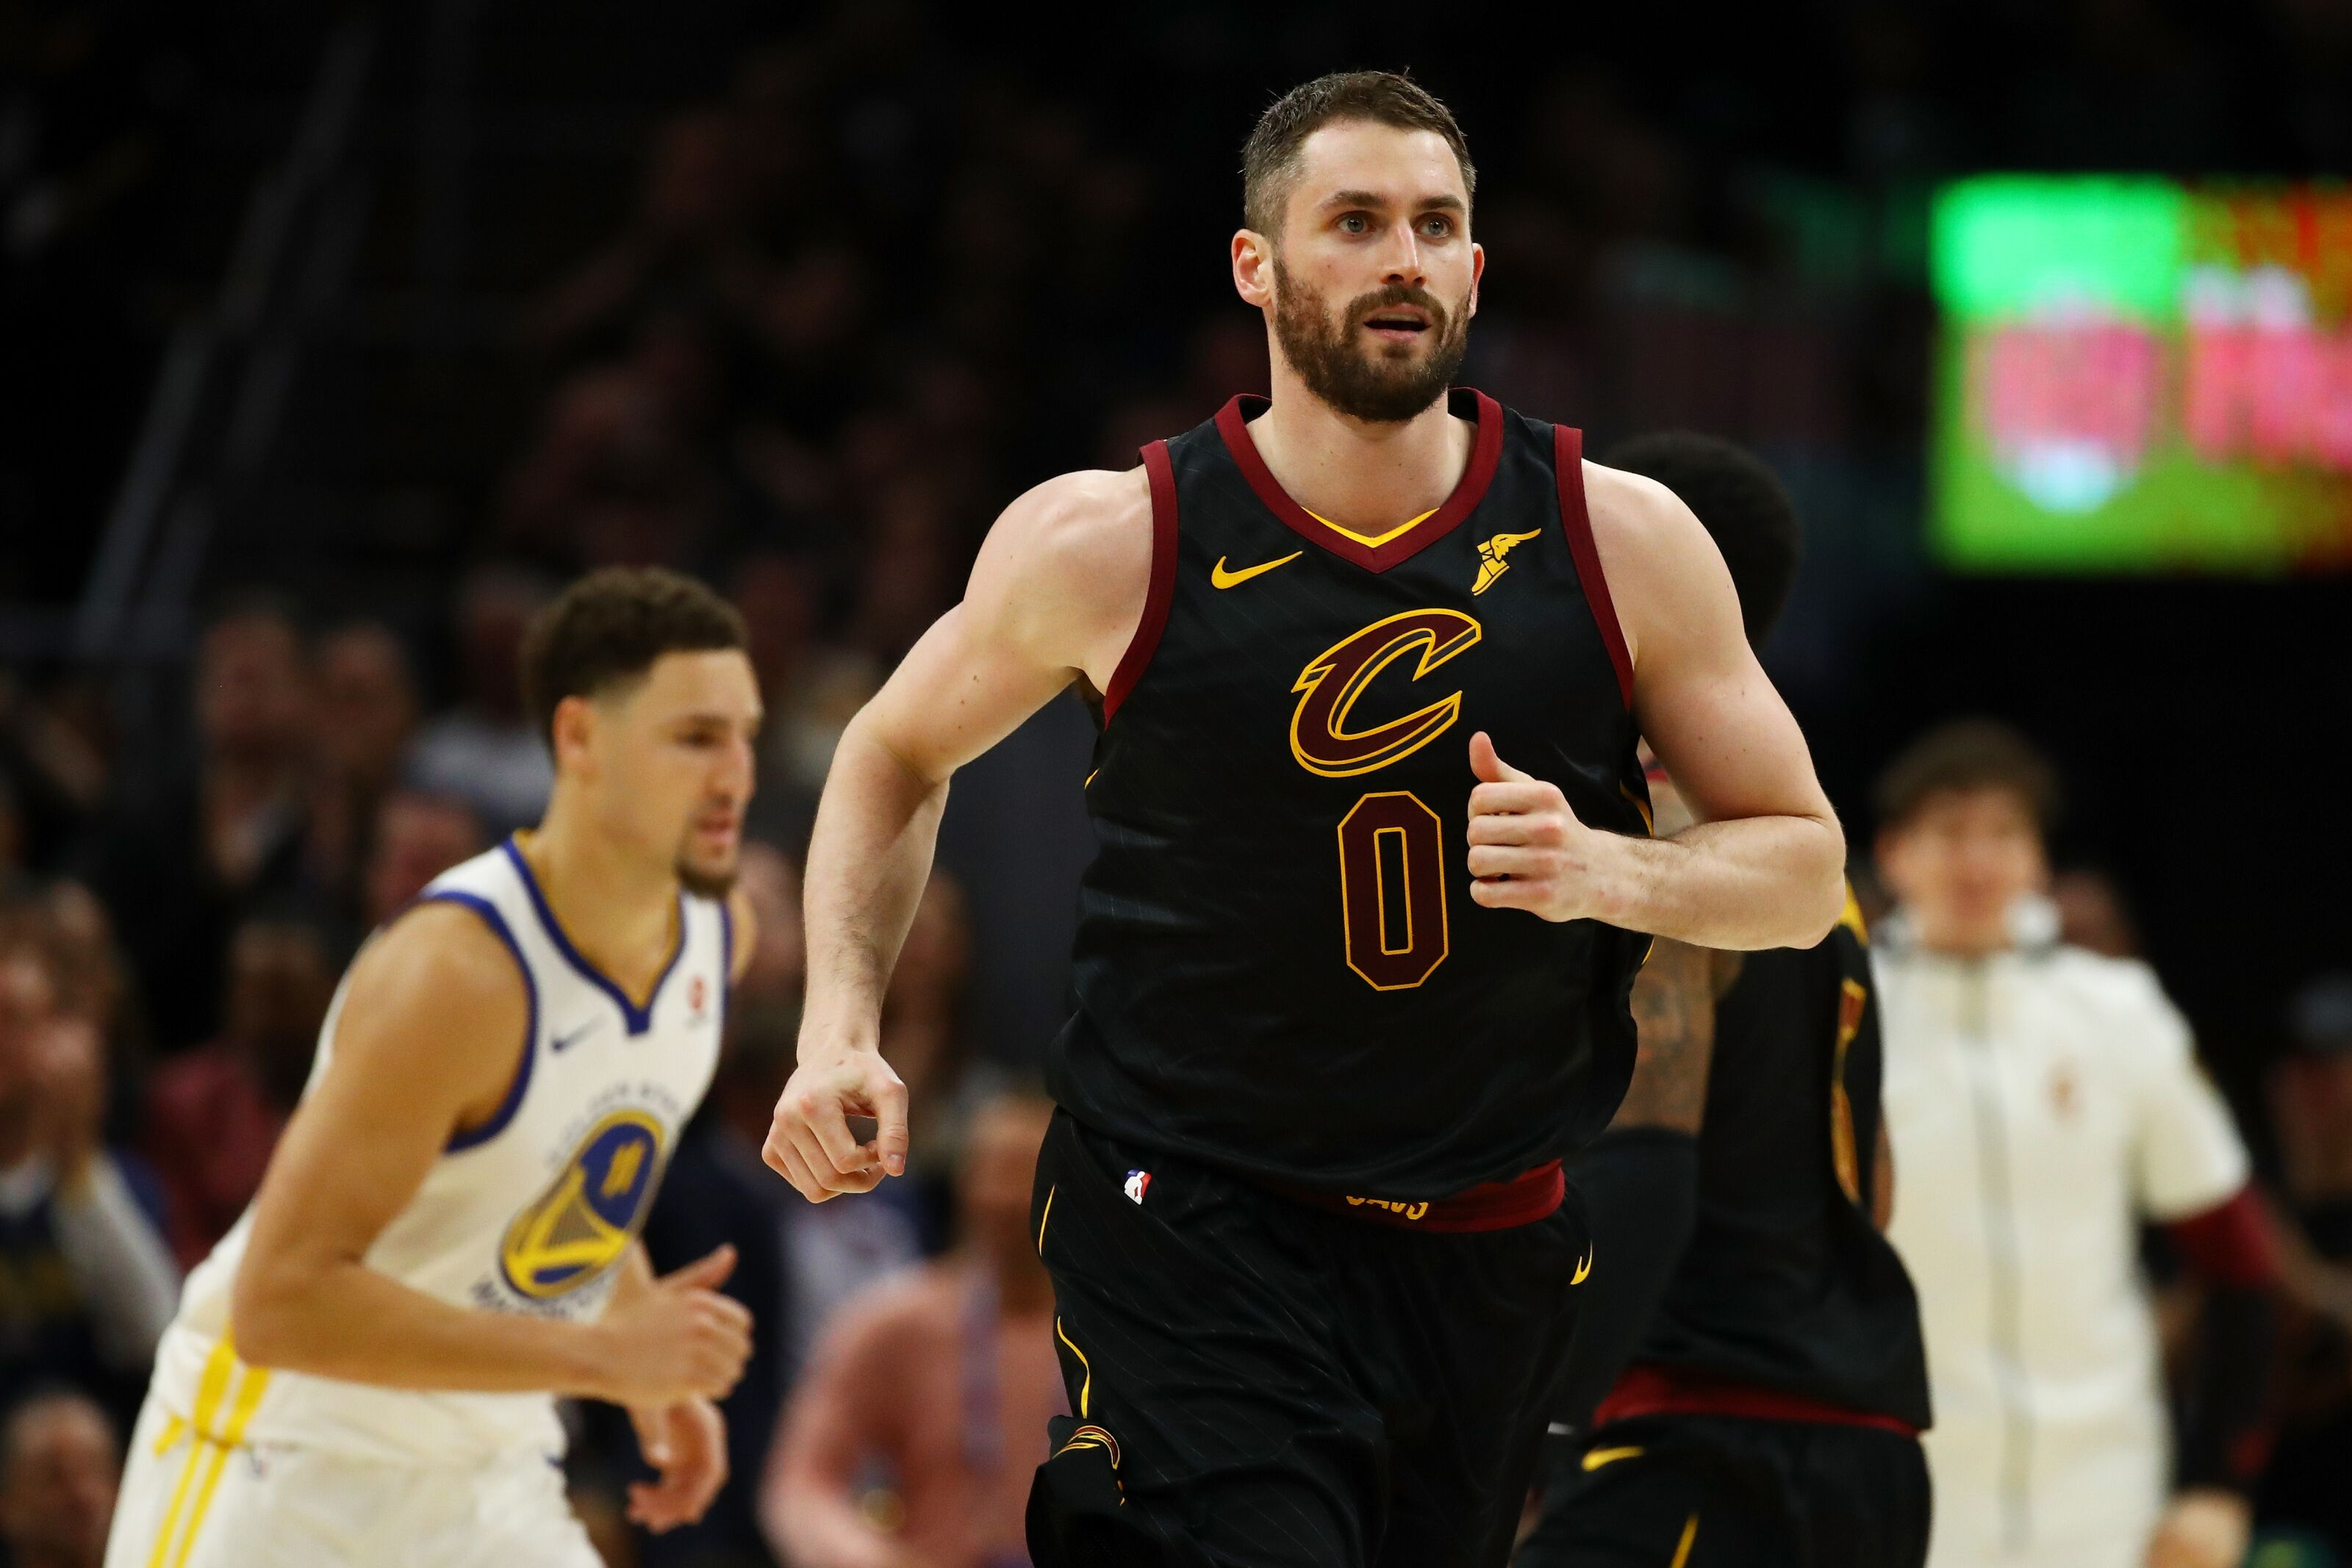 Cleveland Cavaliers: Waiting to move Kevin Love is the smart play